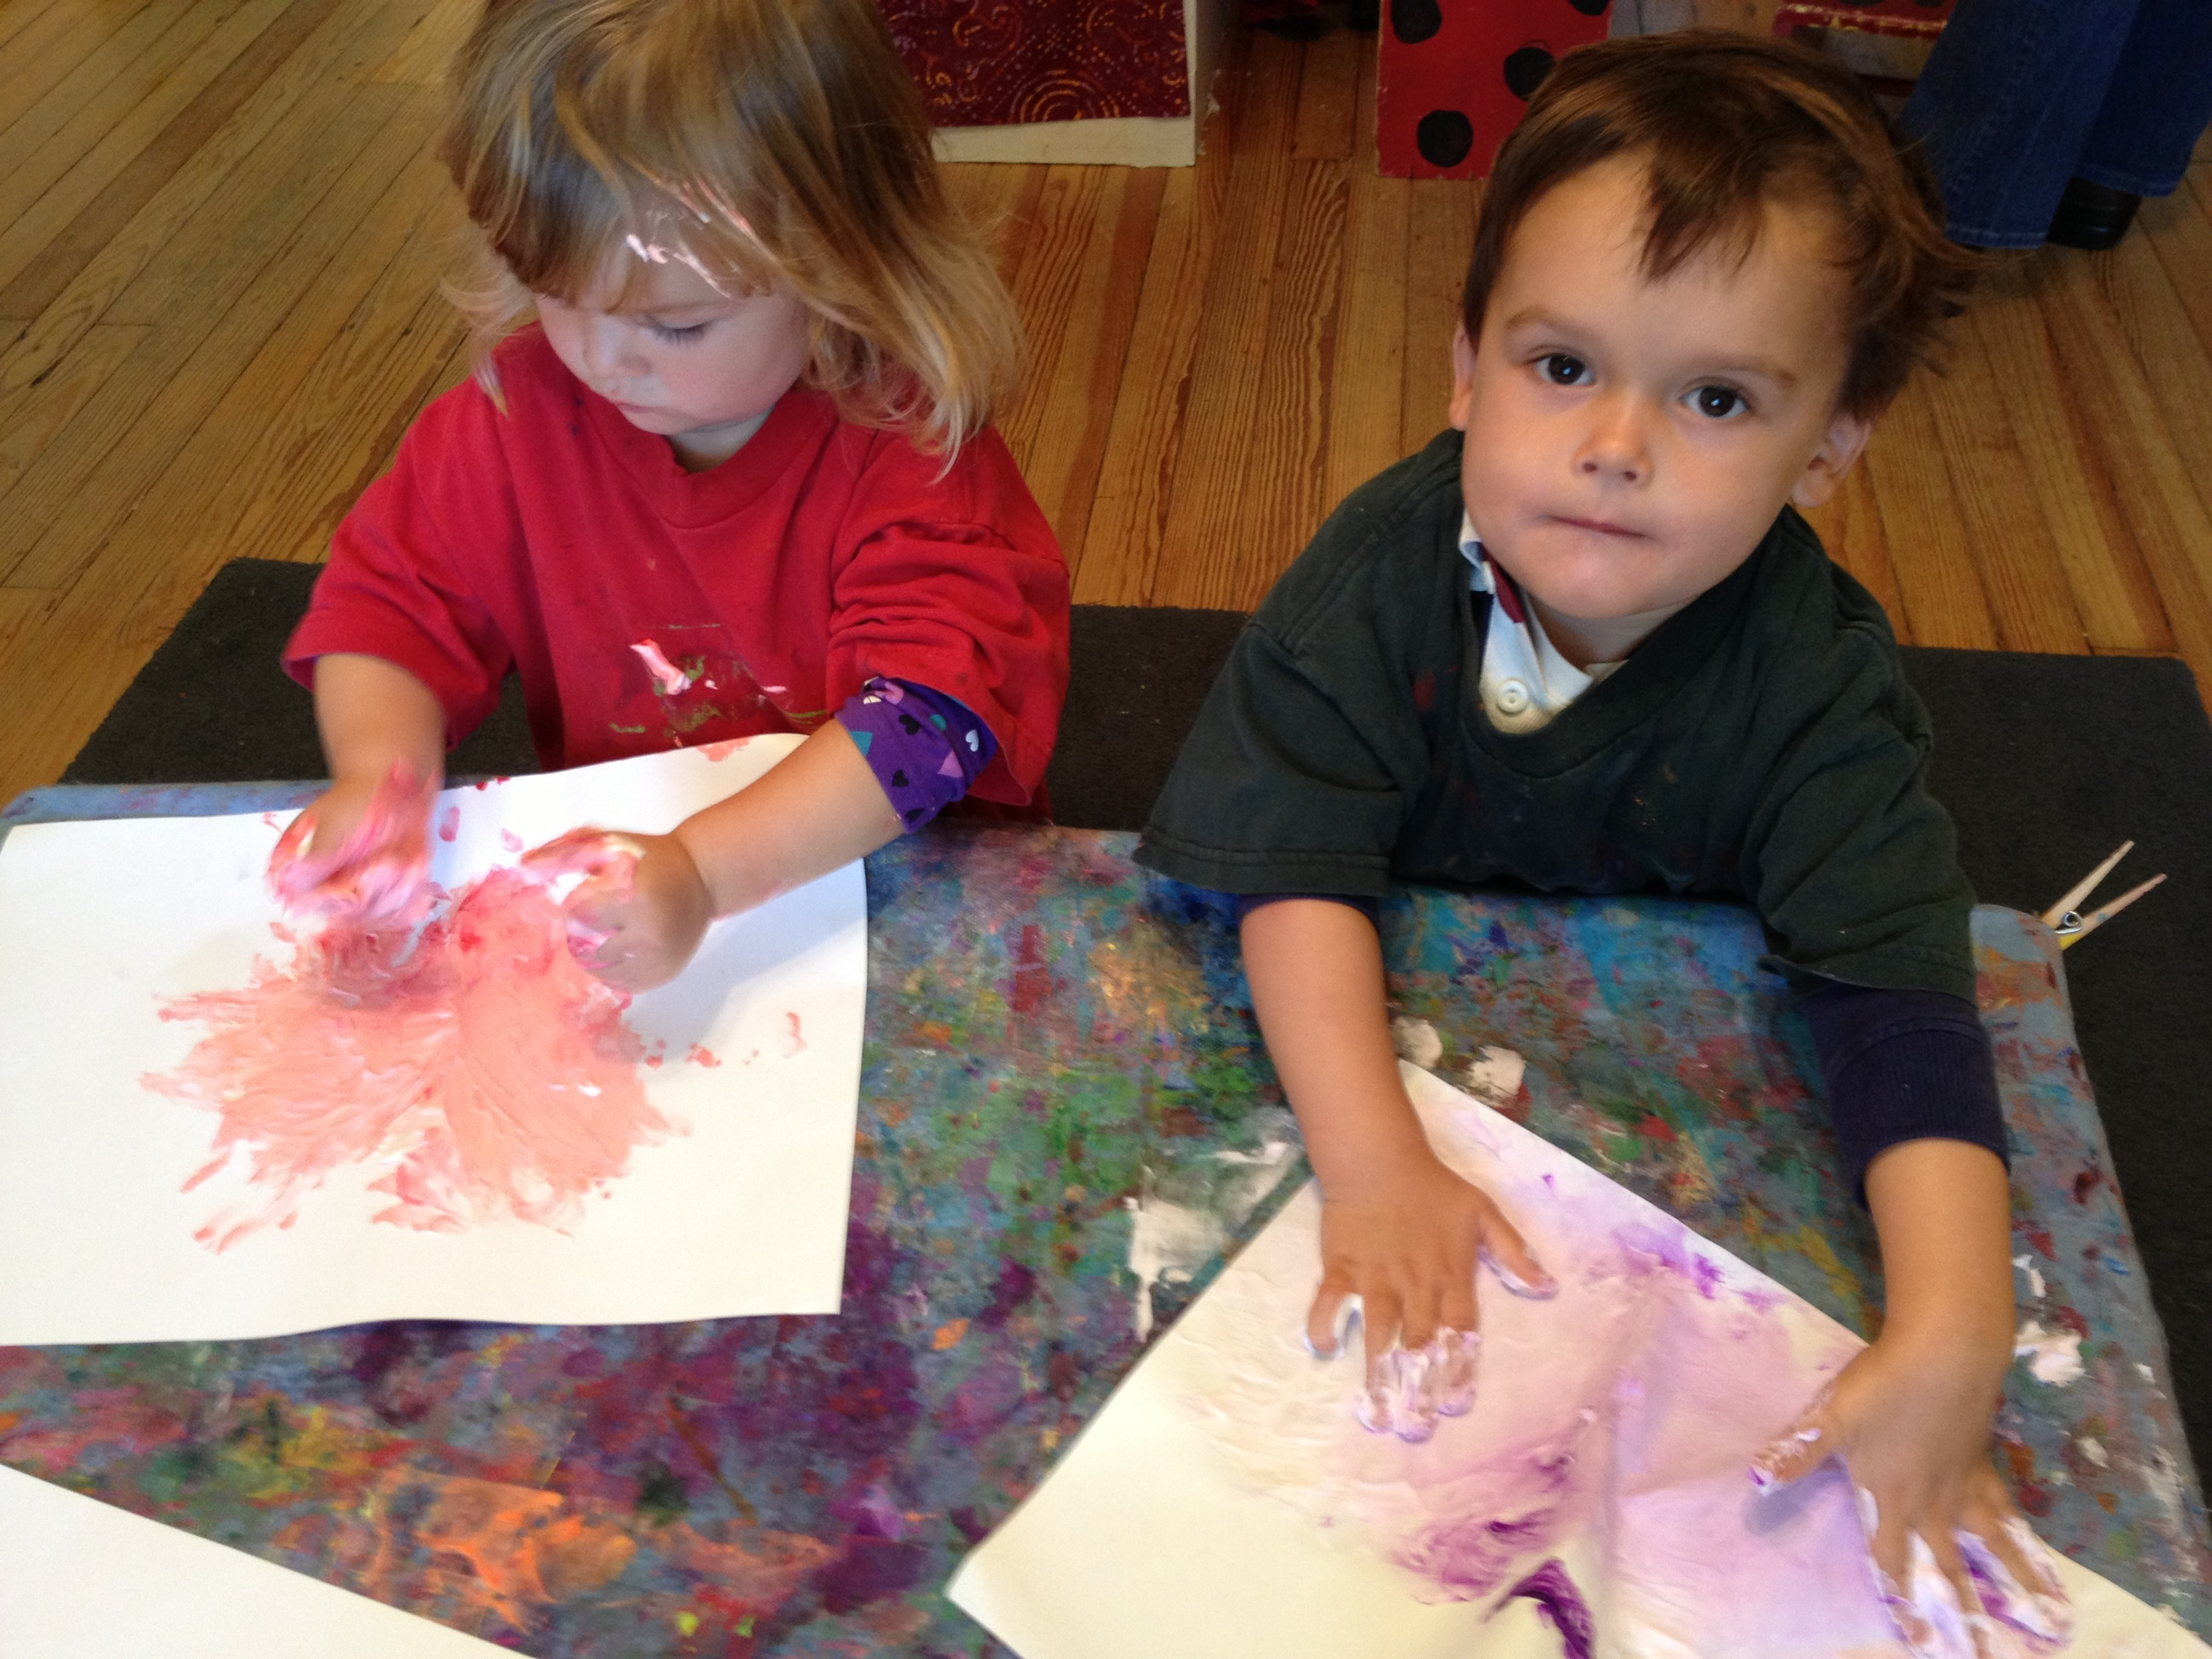 Finger painting with shaving cream!